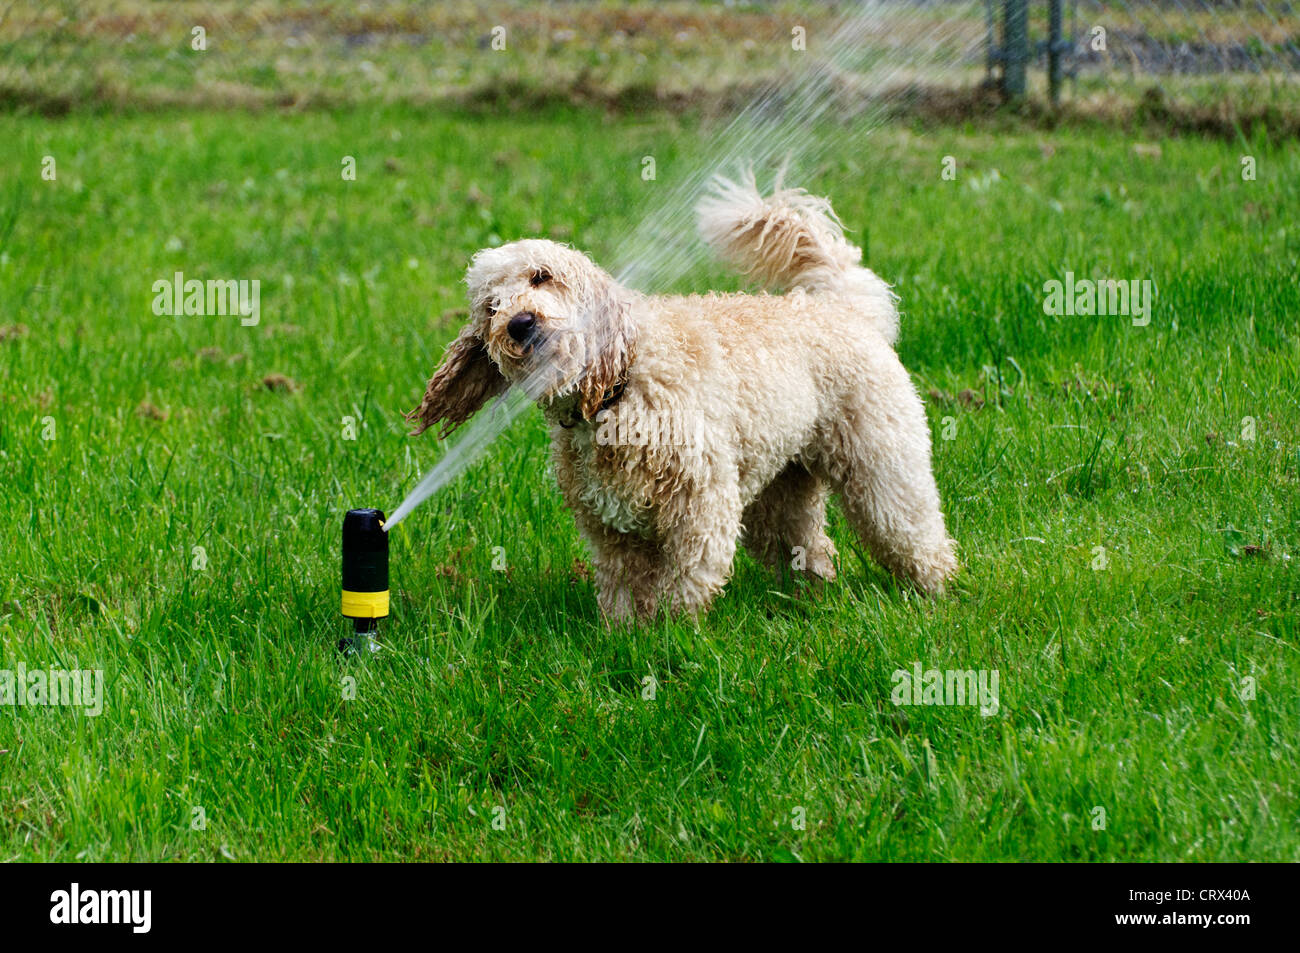 A darling young labradoodle dog drinks from a sprinkler in the yard on a warm summer day. Stock Photo